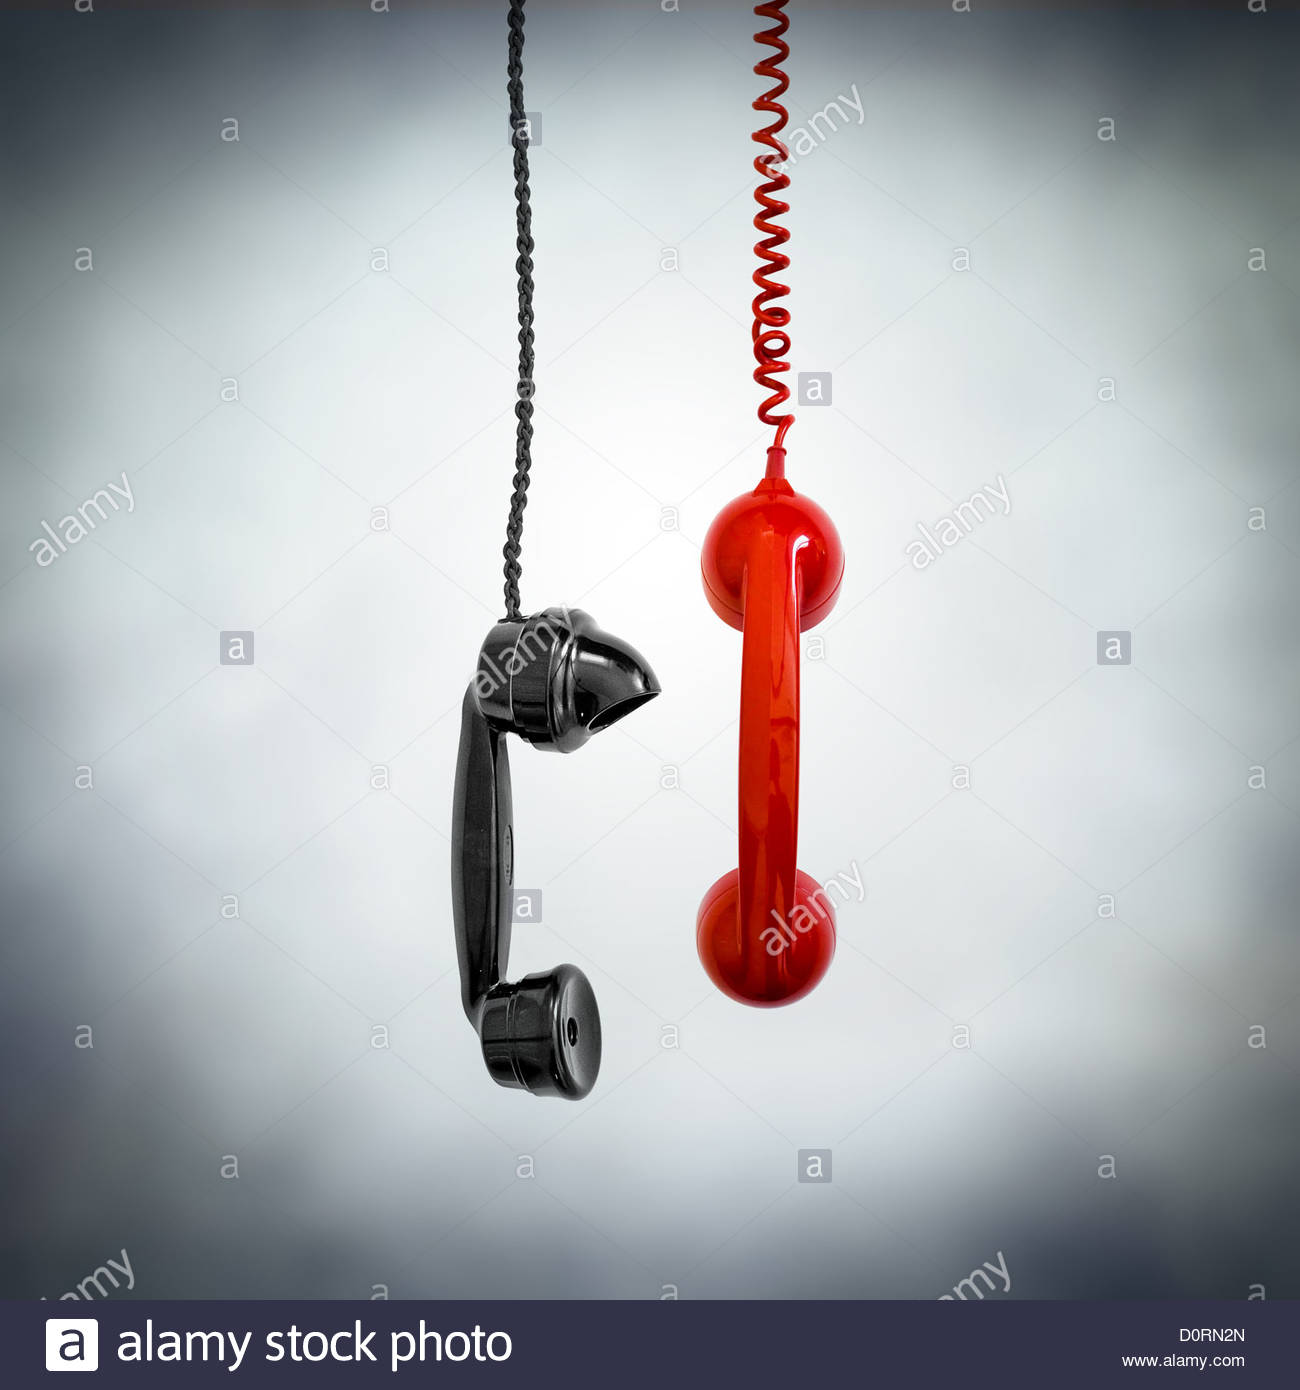 black and red phone - Stock Image